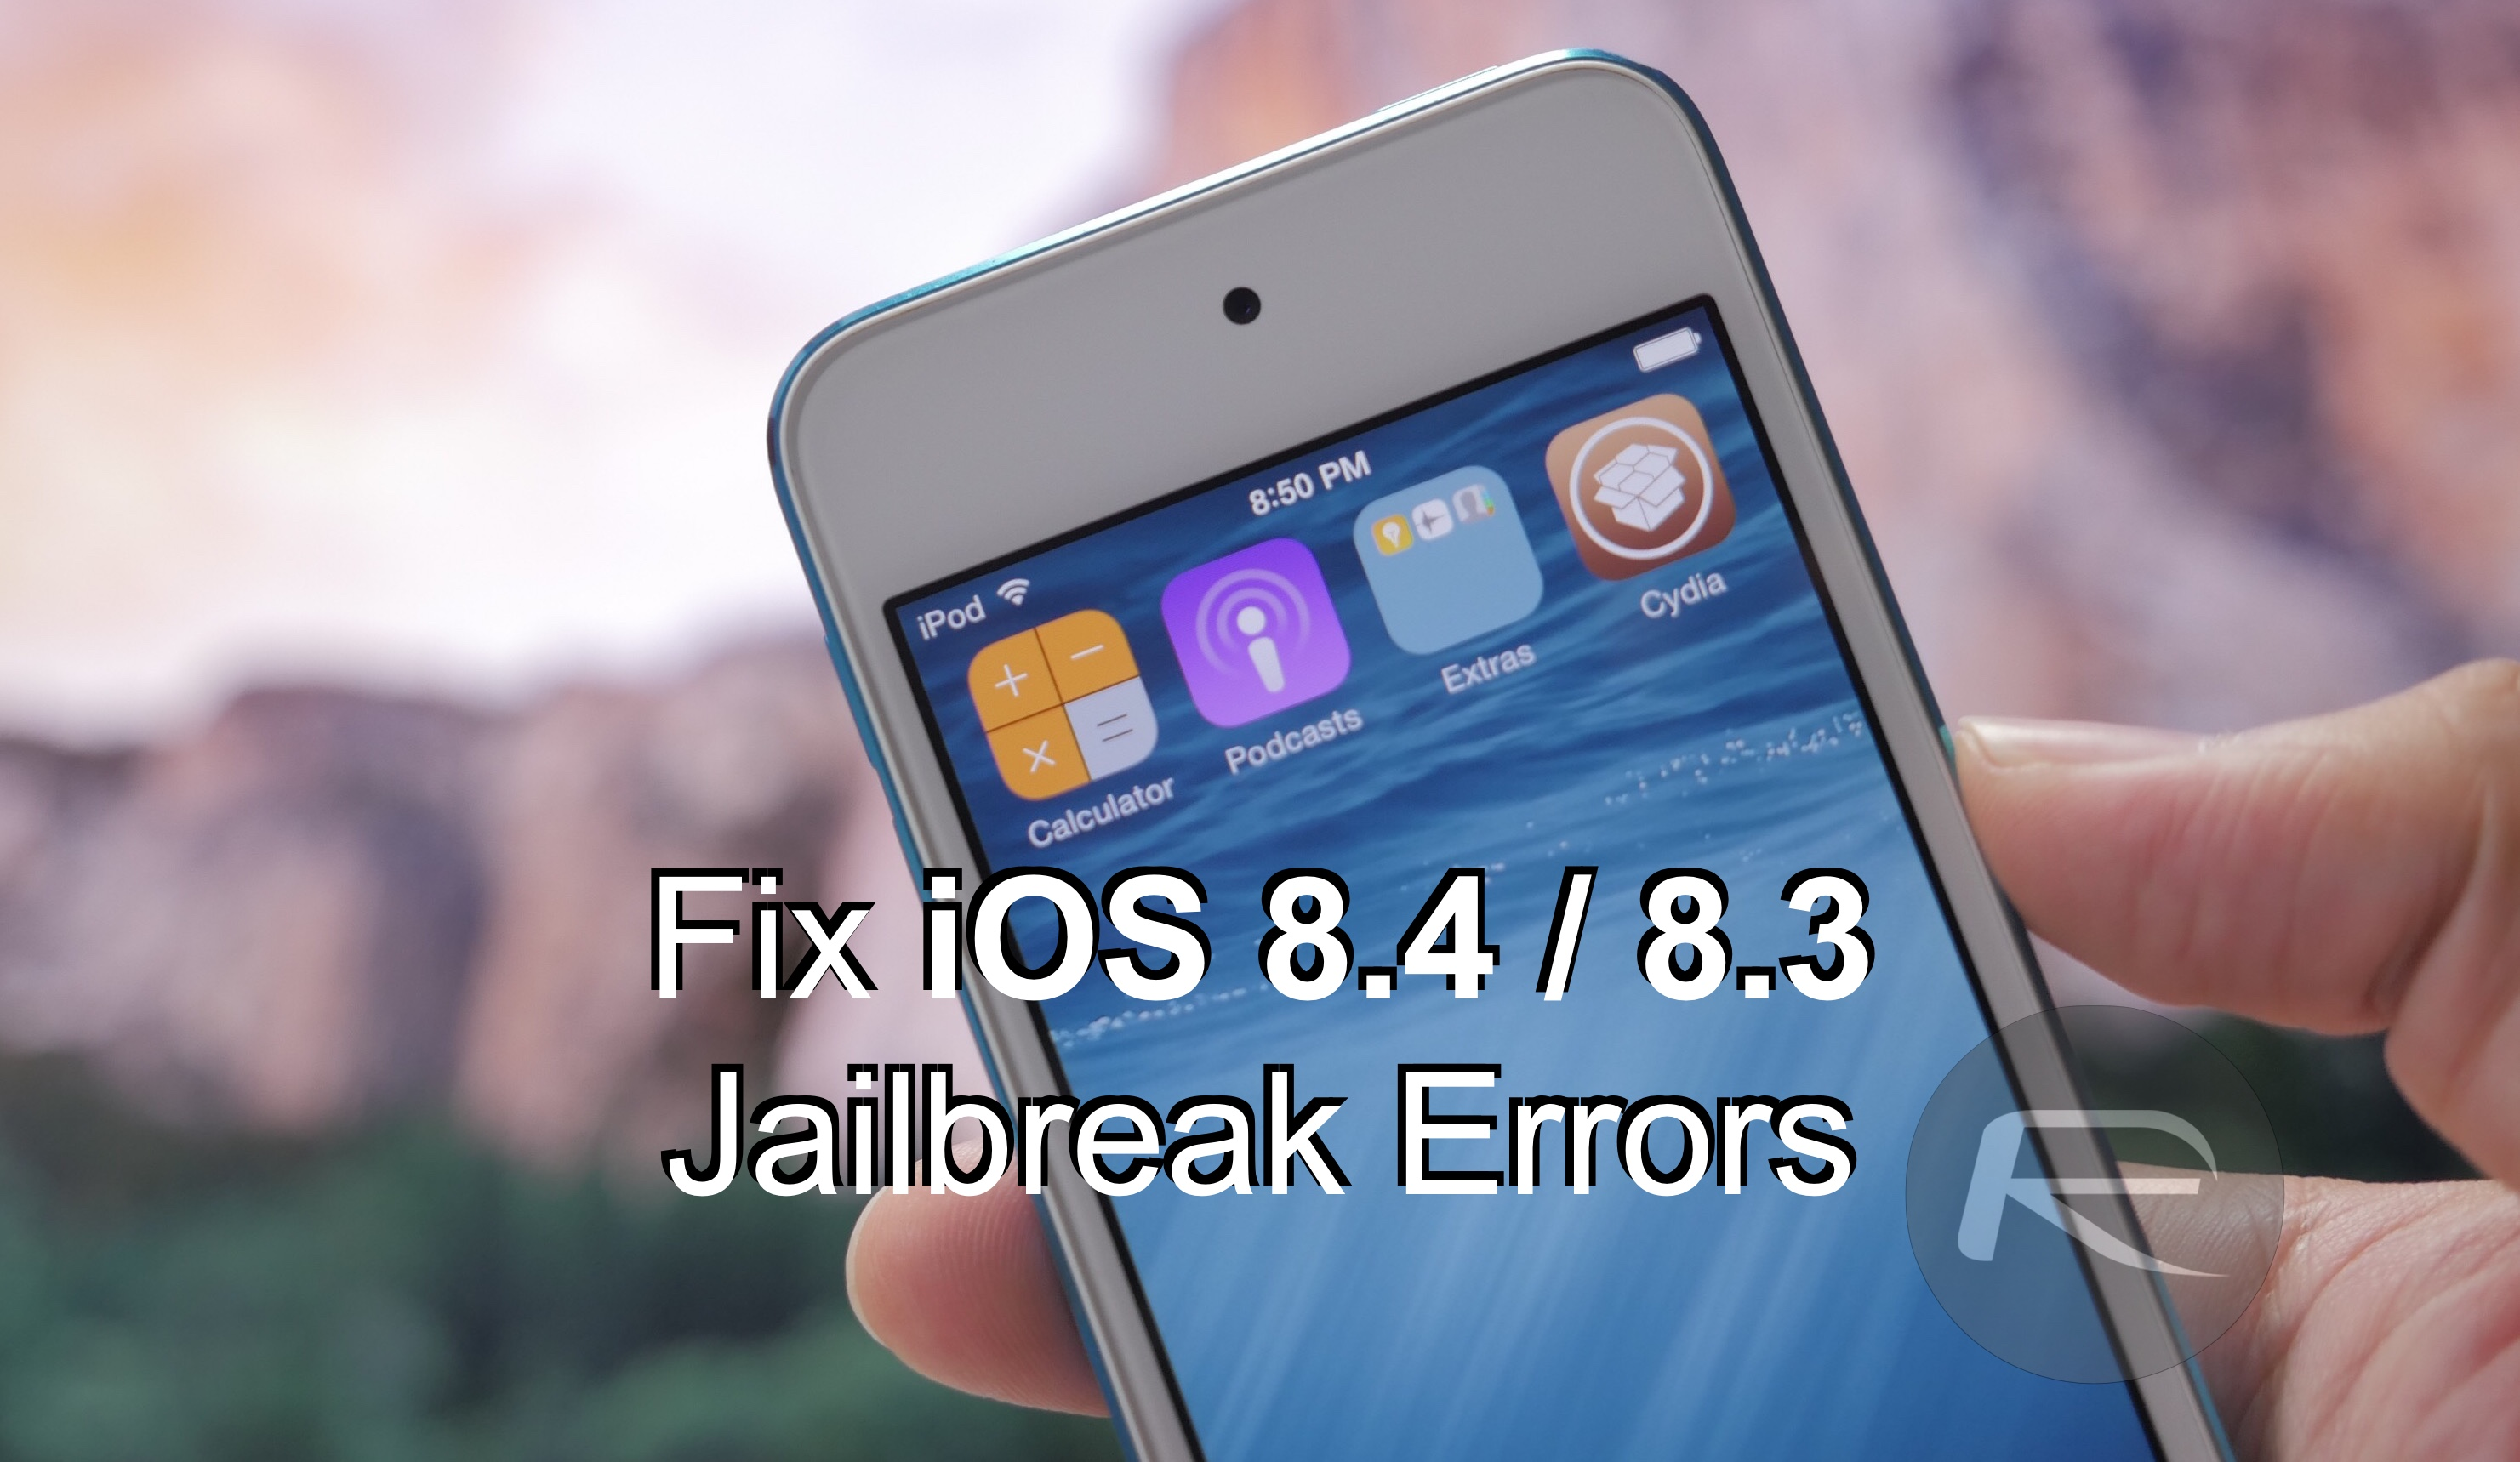 8.4 8.3 jailbreak errors fix